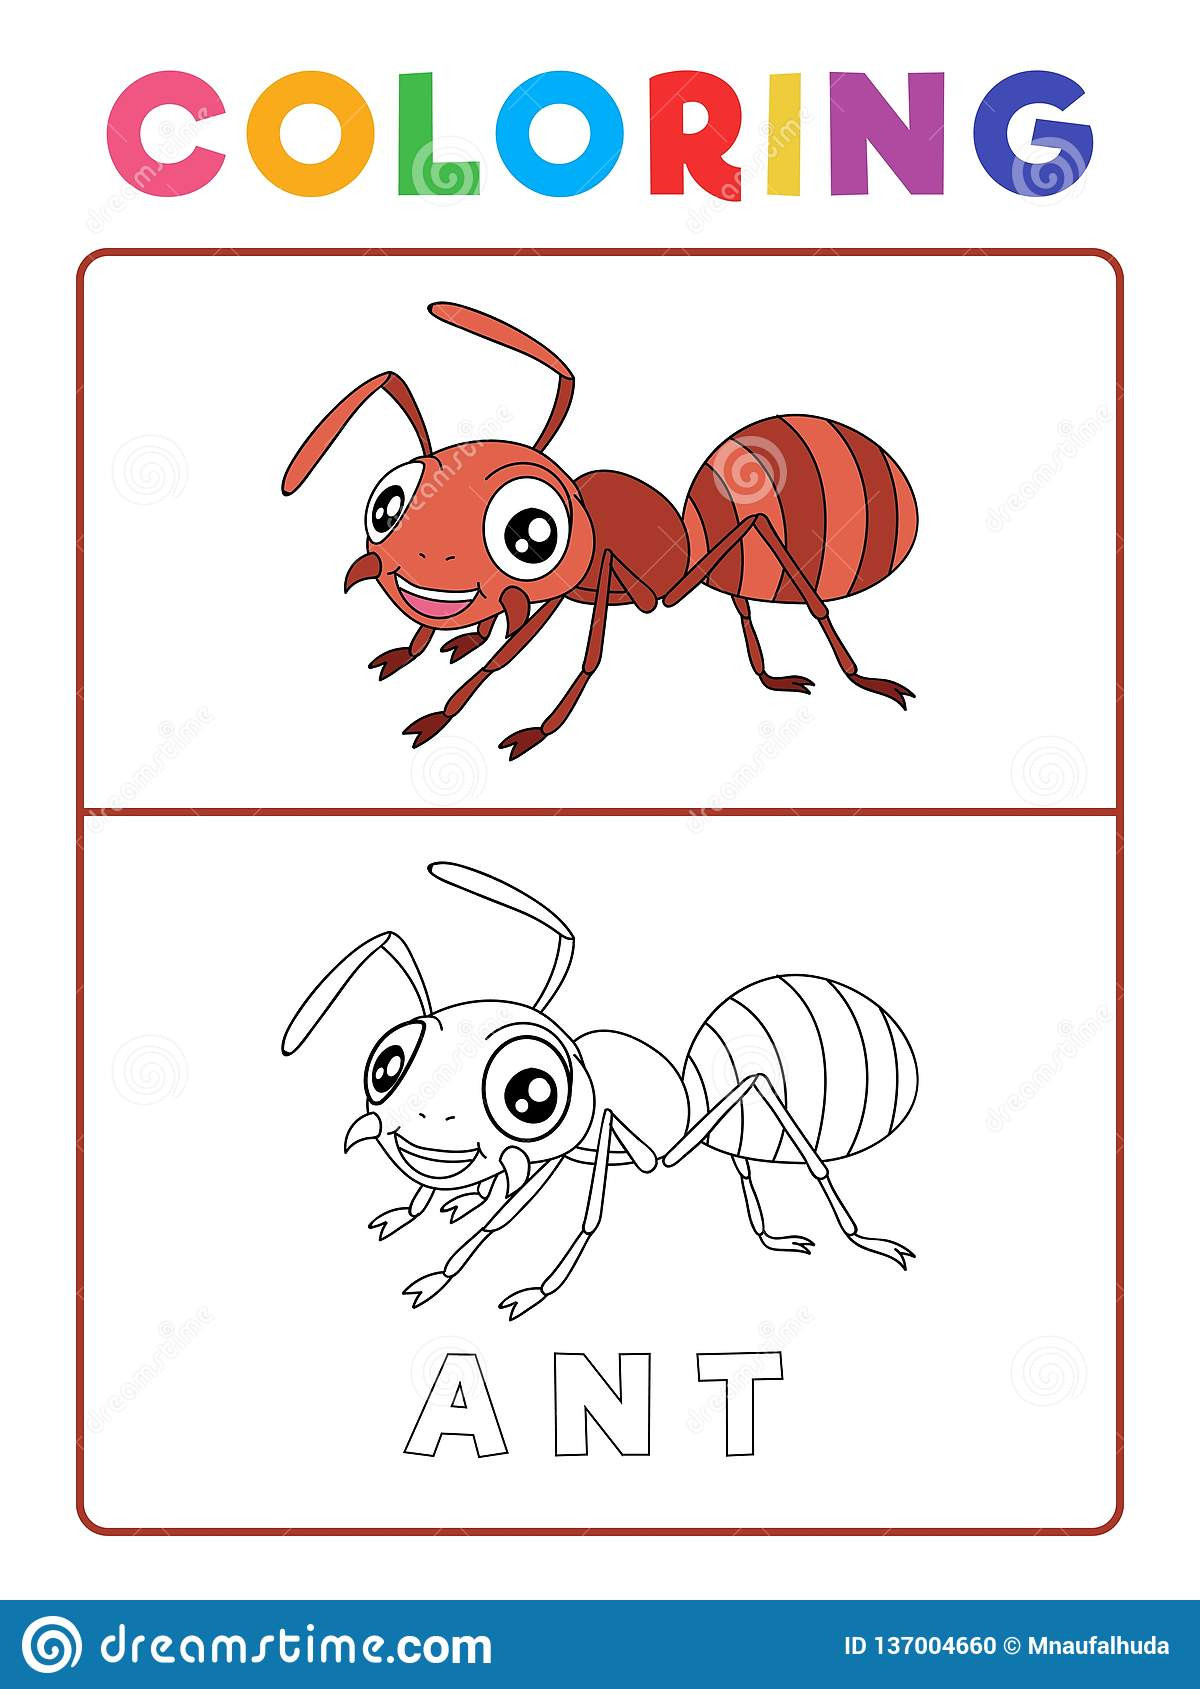 Insect Worksheets for Preschoolers Funny Ant Insect Animal Coloring Book with Example